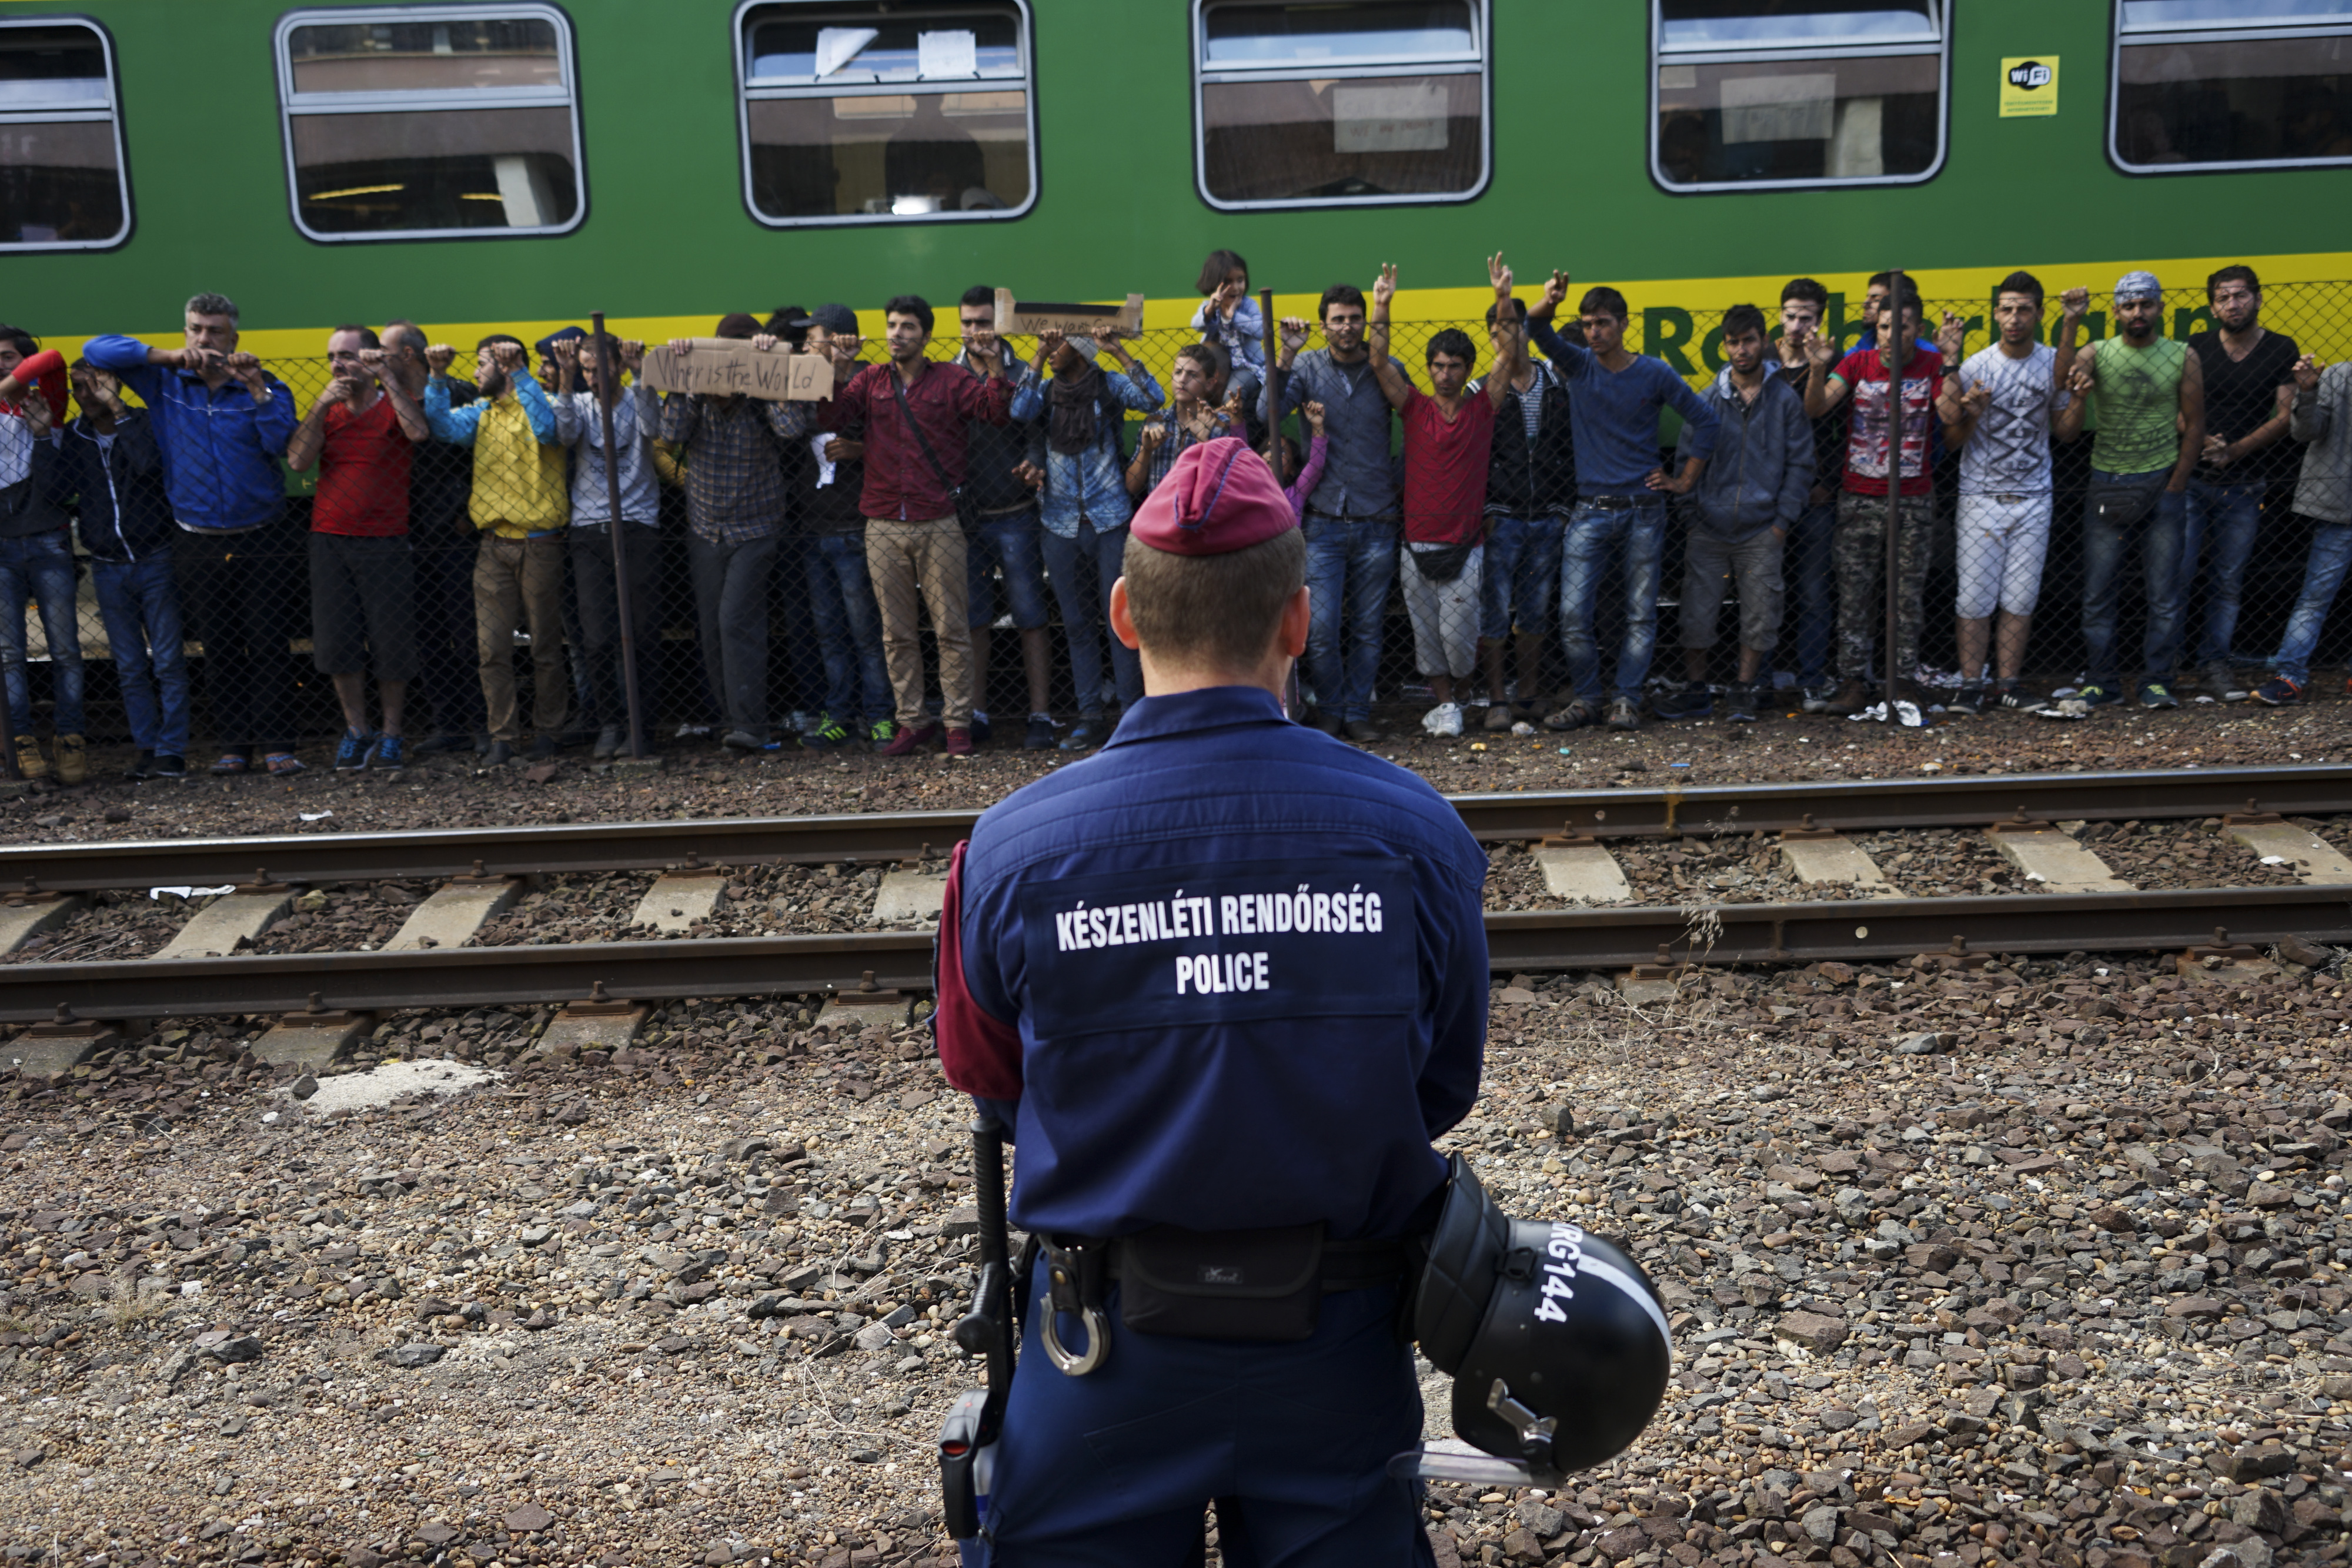 syrian_refugees_strike_at_the_platform_of_budapest_keleti_railway_station_refugee_crisis_budapest_hungary_central_europe_4_september_2015_3.jpg